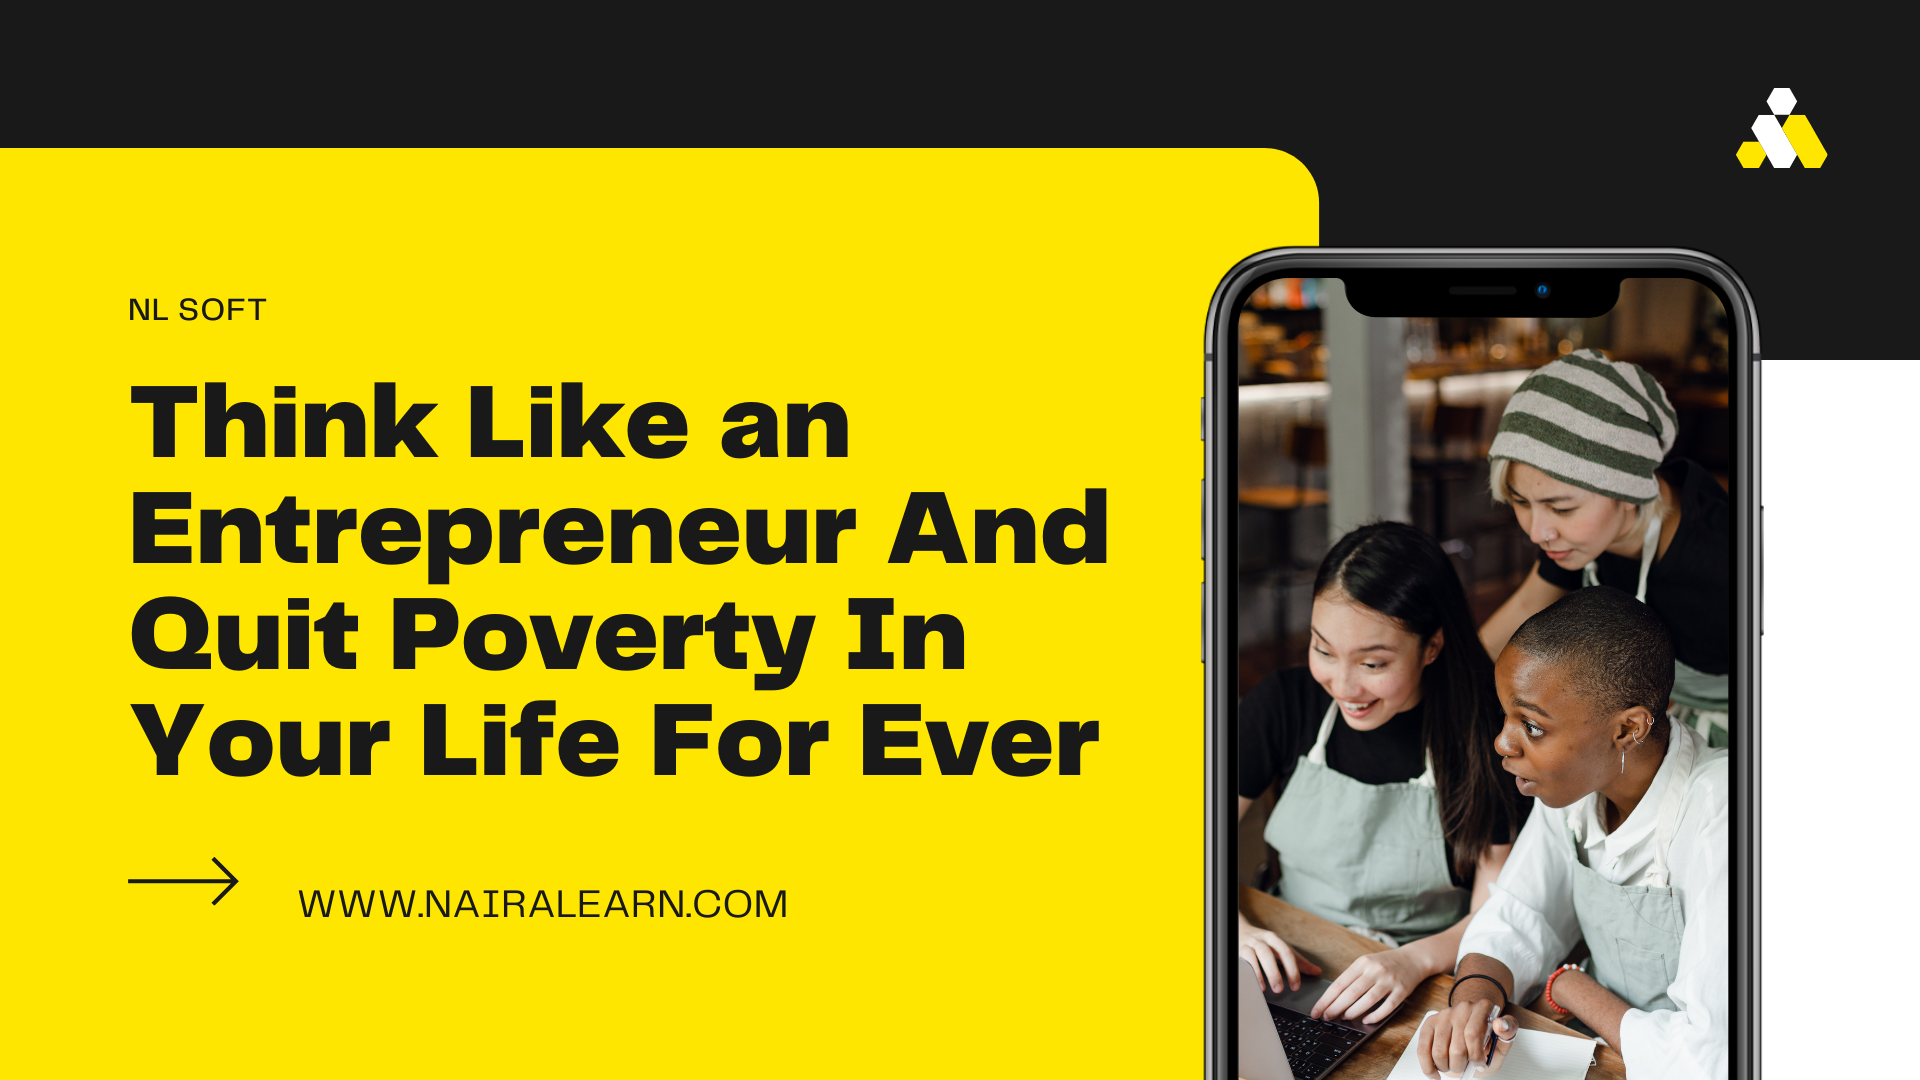 Think Like an Entrepreneur And Quit Poverty In Your Life For Ever